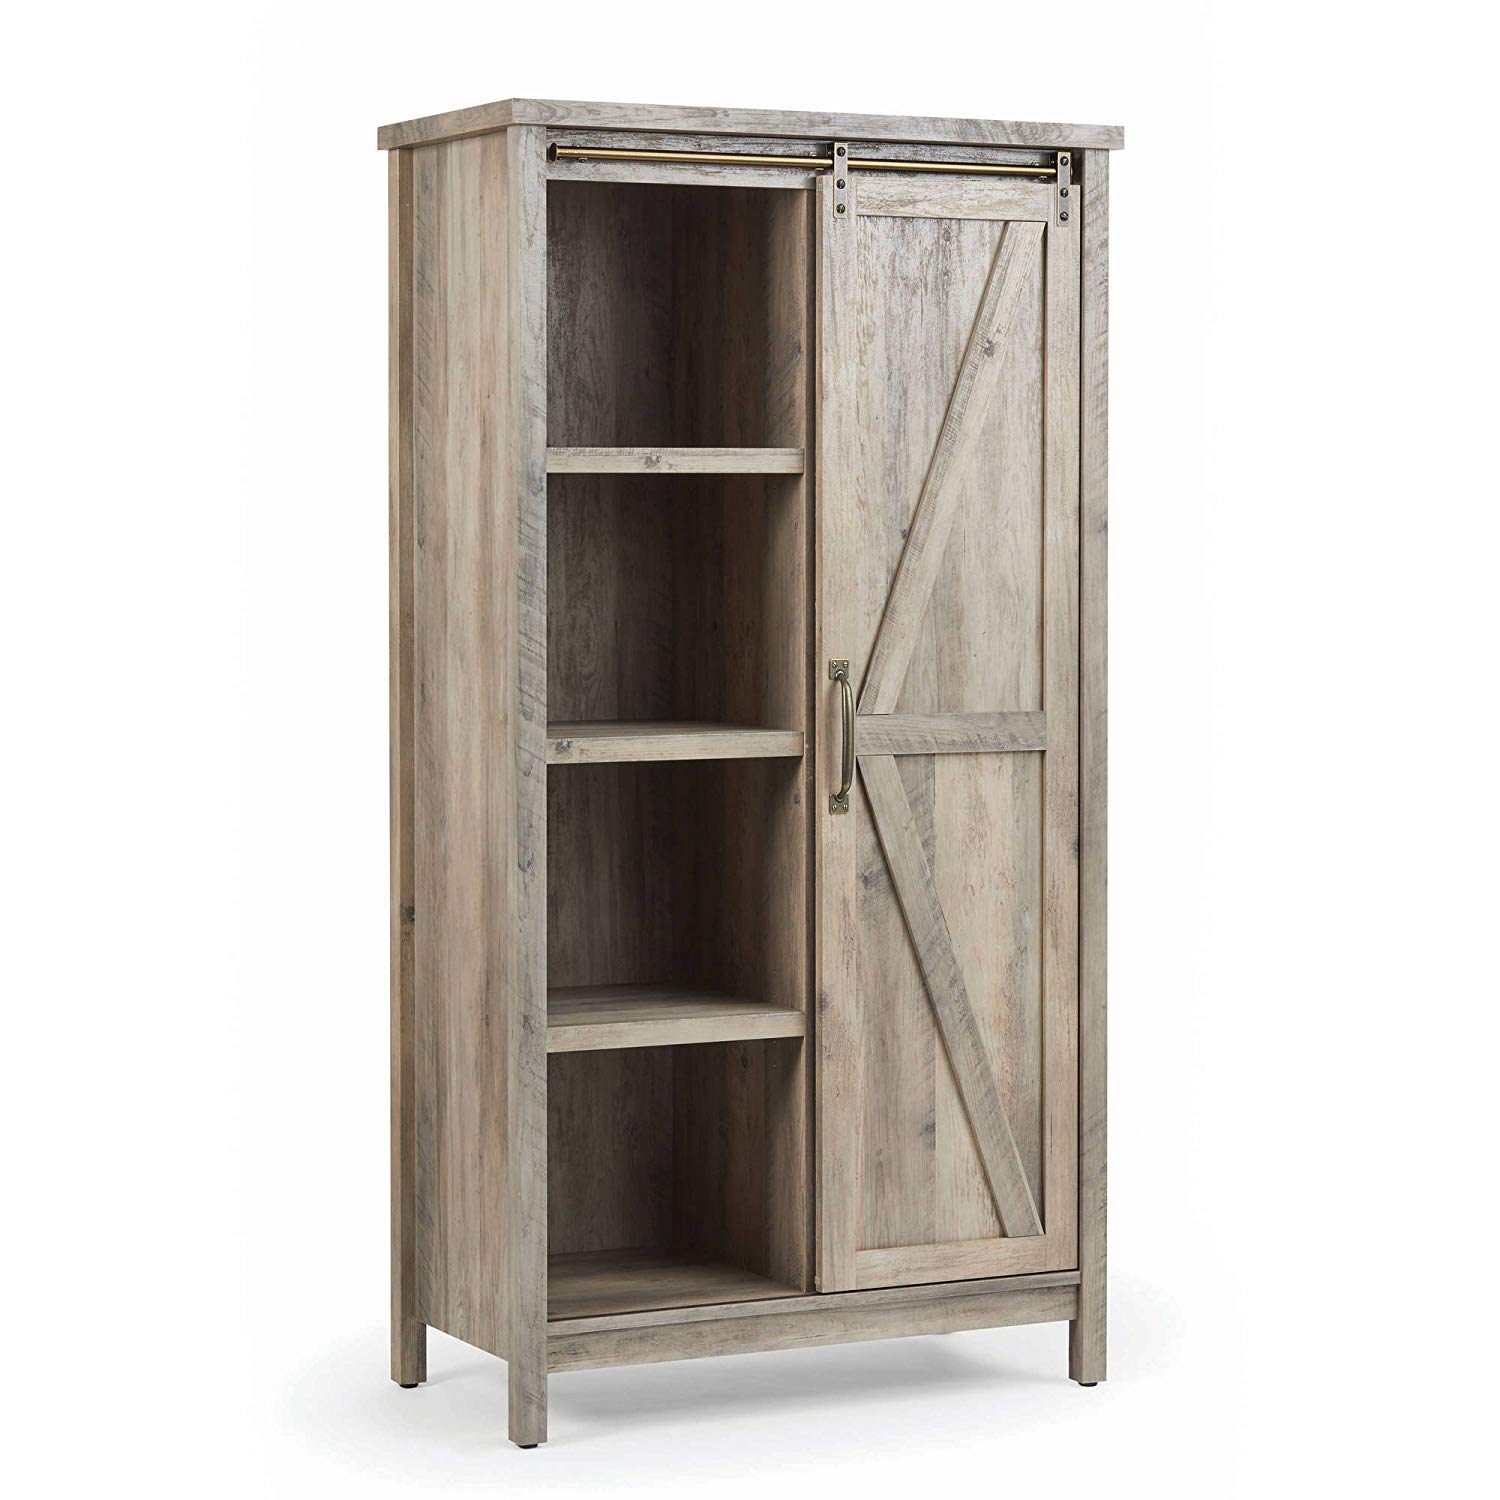 better homes and gardens storage cabinet rustic gray accent table multiple colors finish kitchen dining foyer decor moroccan mosaic gold brass coffee antique armoire small patio